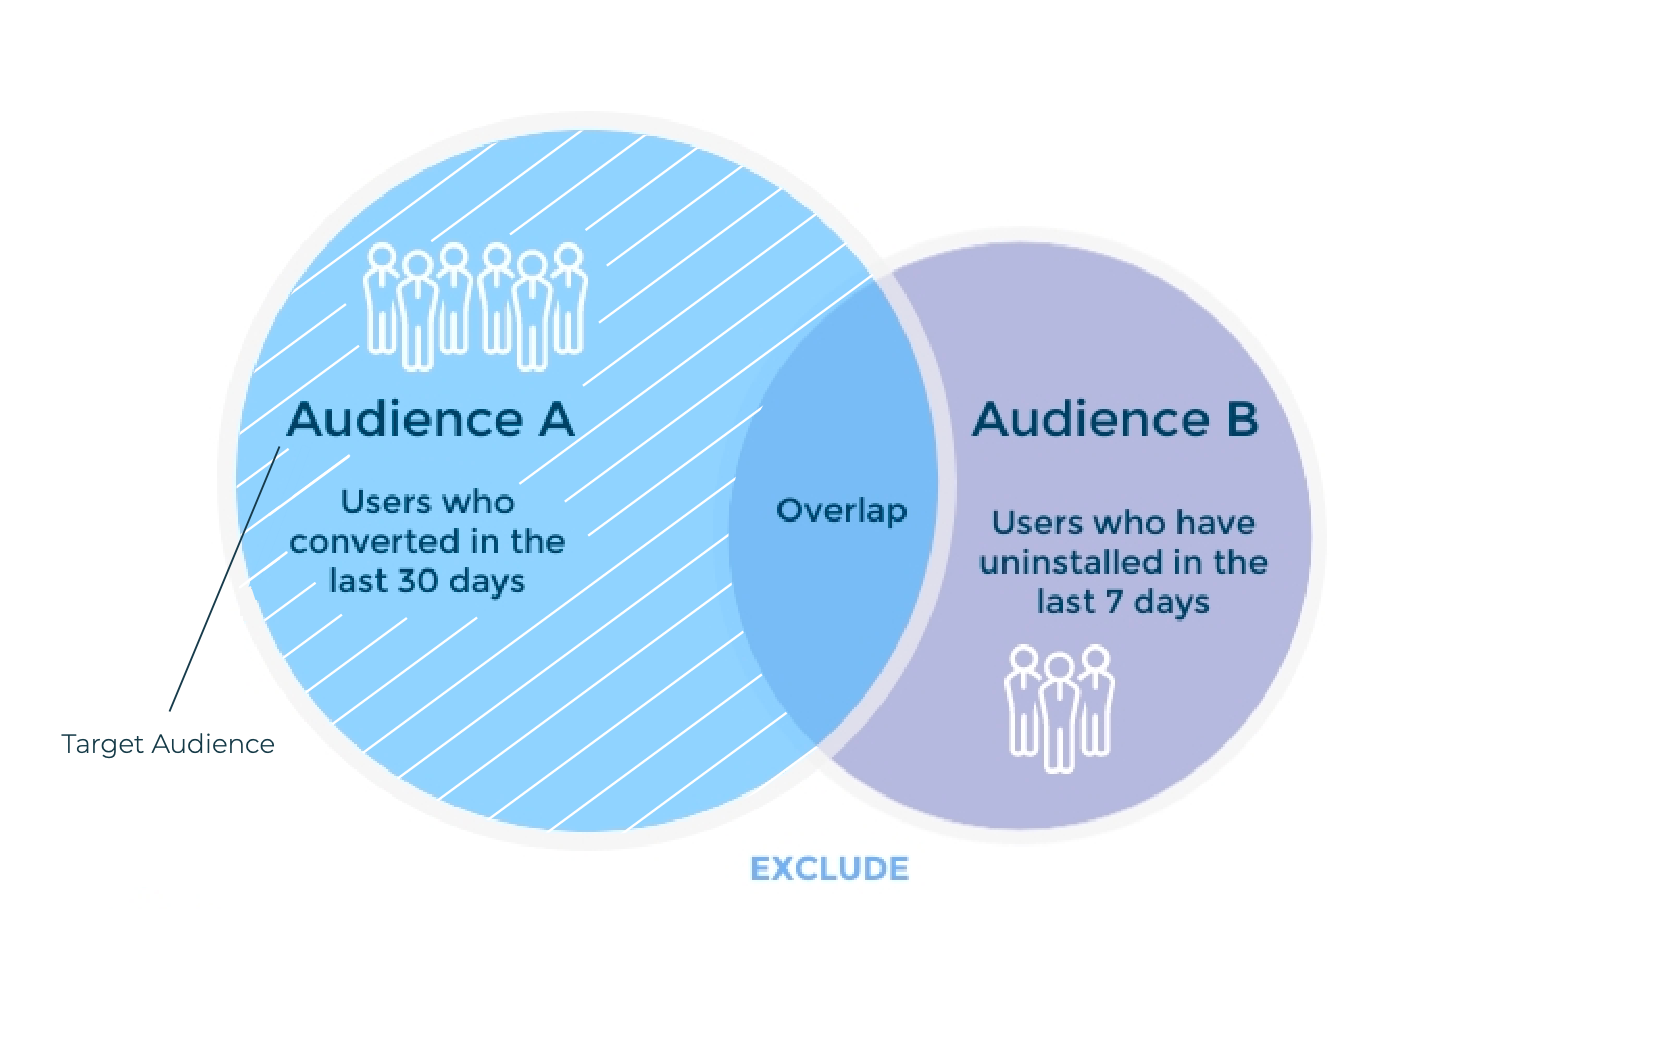 Exemple de segmentation d'audience dans AppsFlyer (Audience A, exclure B)